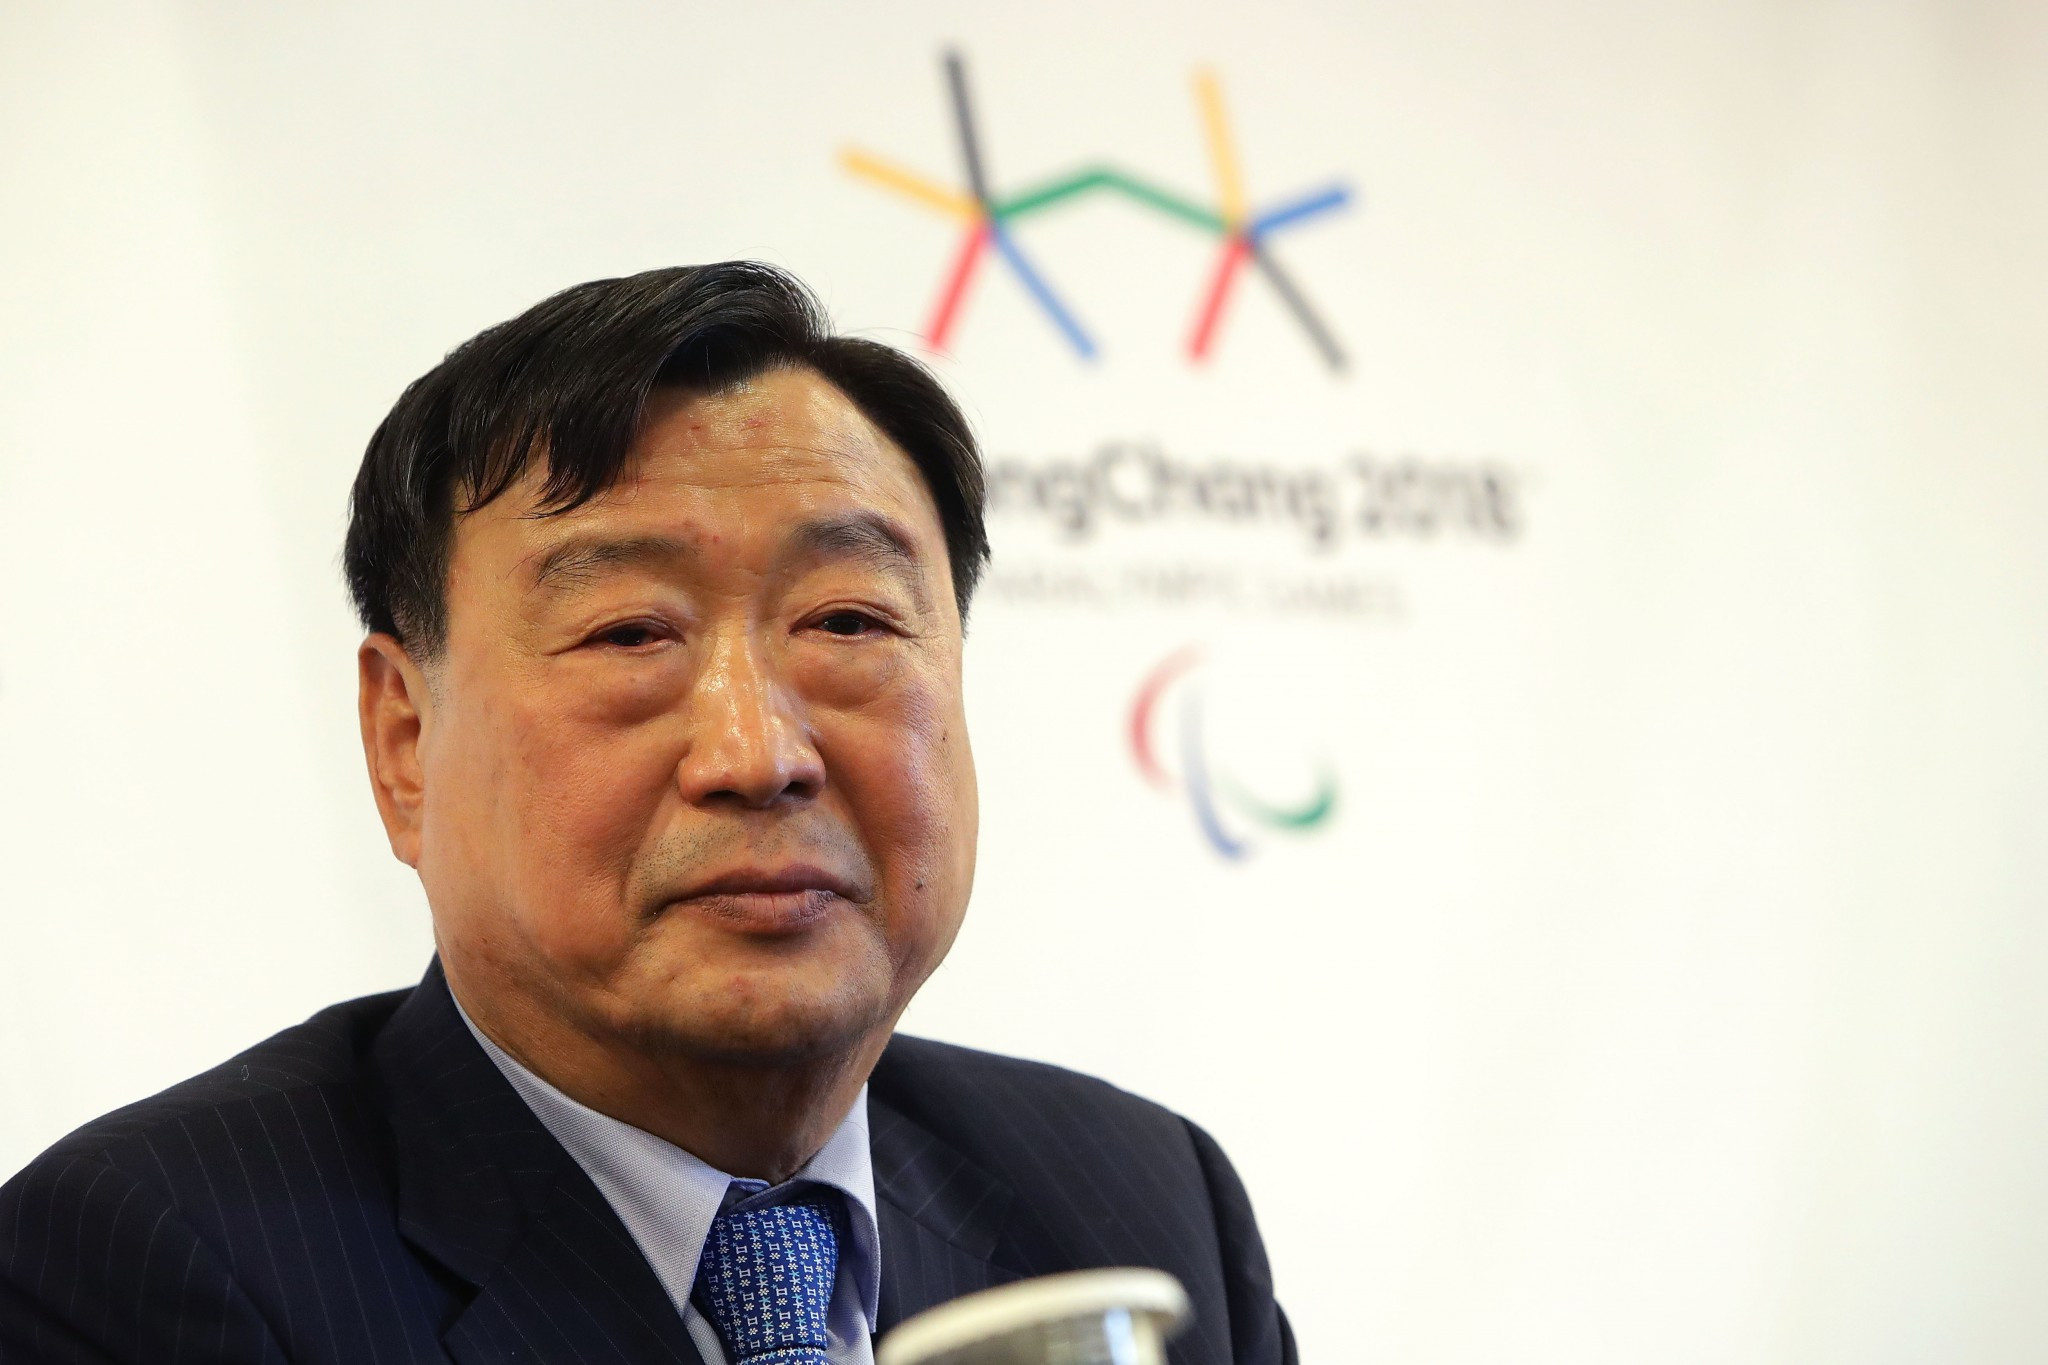 Pyeongchang 2018 President Lee Hee-beom has said the Organising Committee will continue to lead various promotional activities as it attempts to achieve its ticket sales target of 280,000 for next year's Paralympic Games ©Getty Images